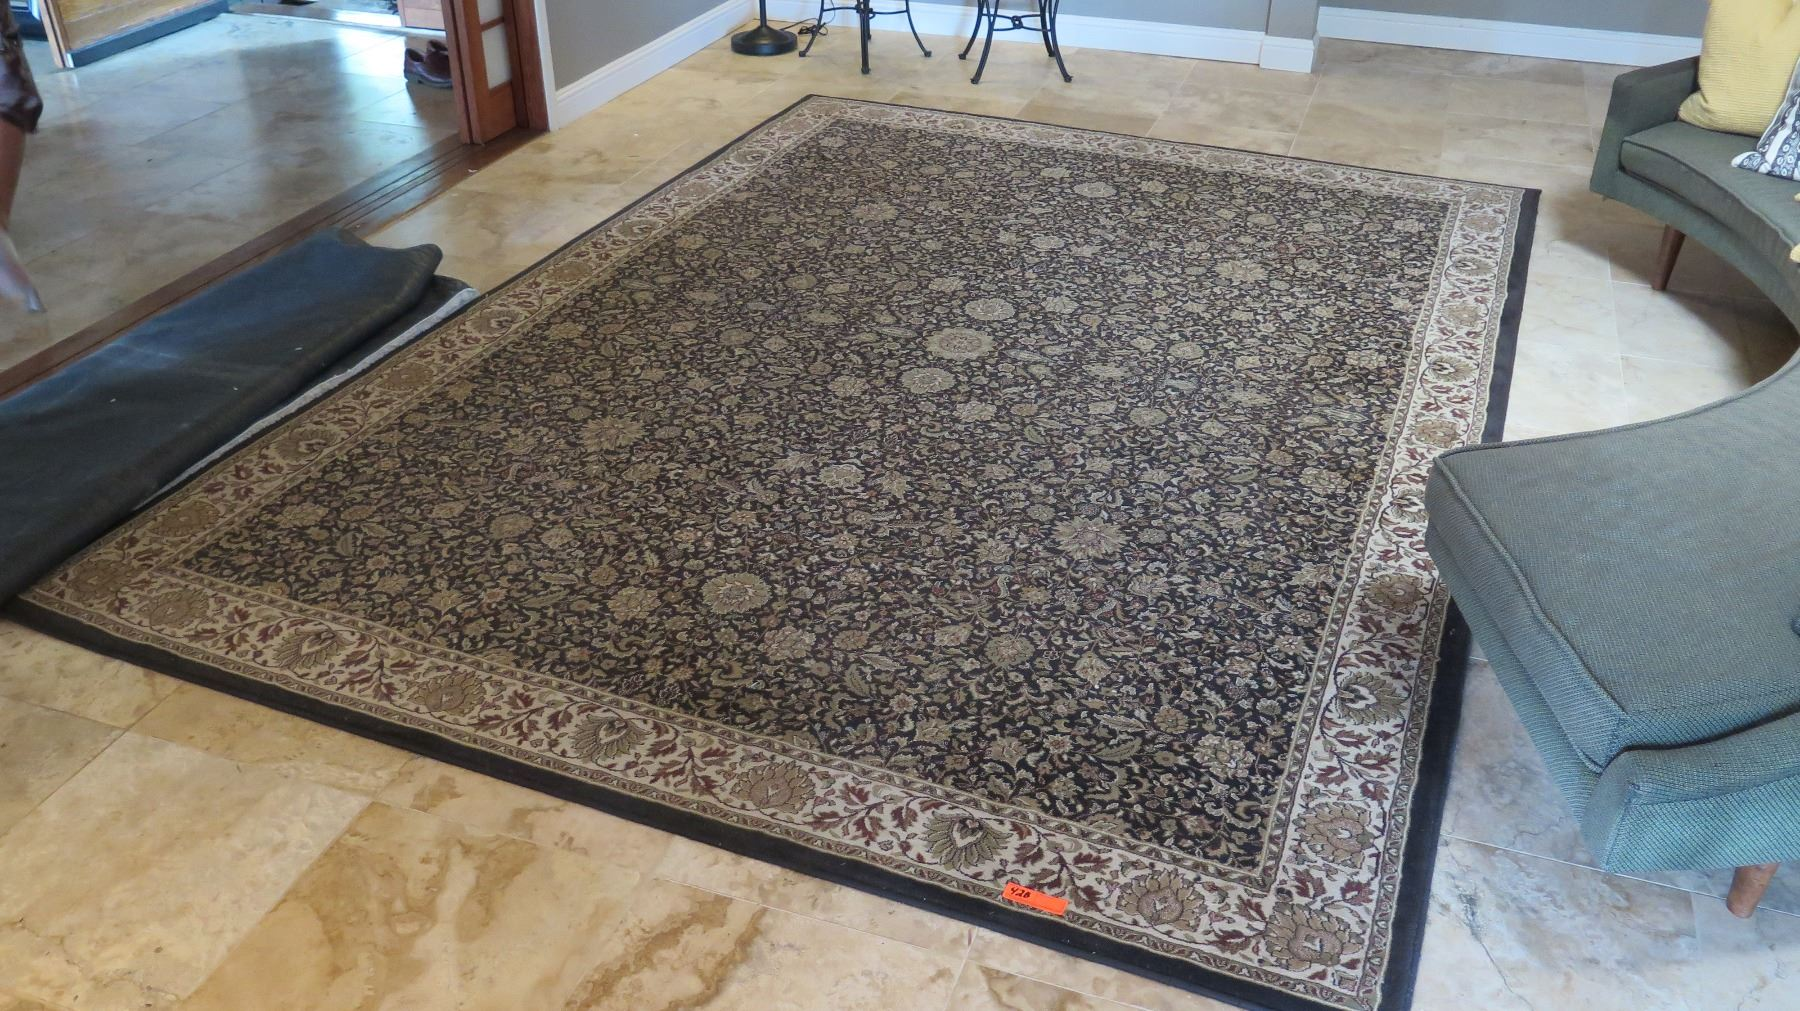 Large Area Rug Black Beige Brown Blue Border 8 X 11